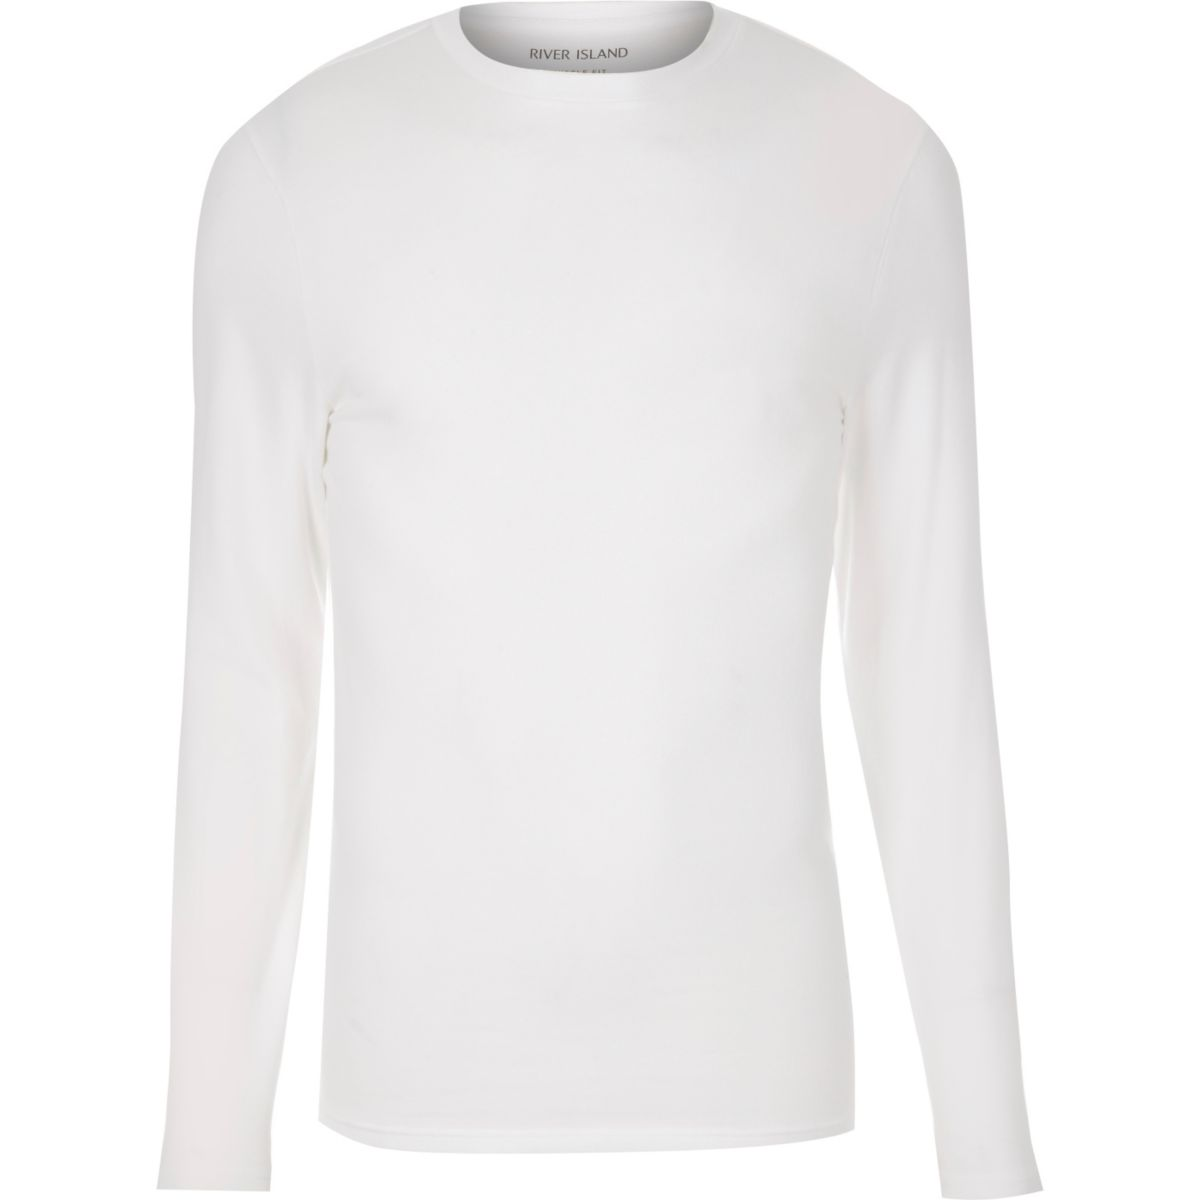 White muscle fit long sleeve t shirt t shirts vests for Long sleeve fitted tee shirt